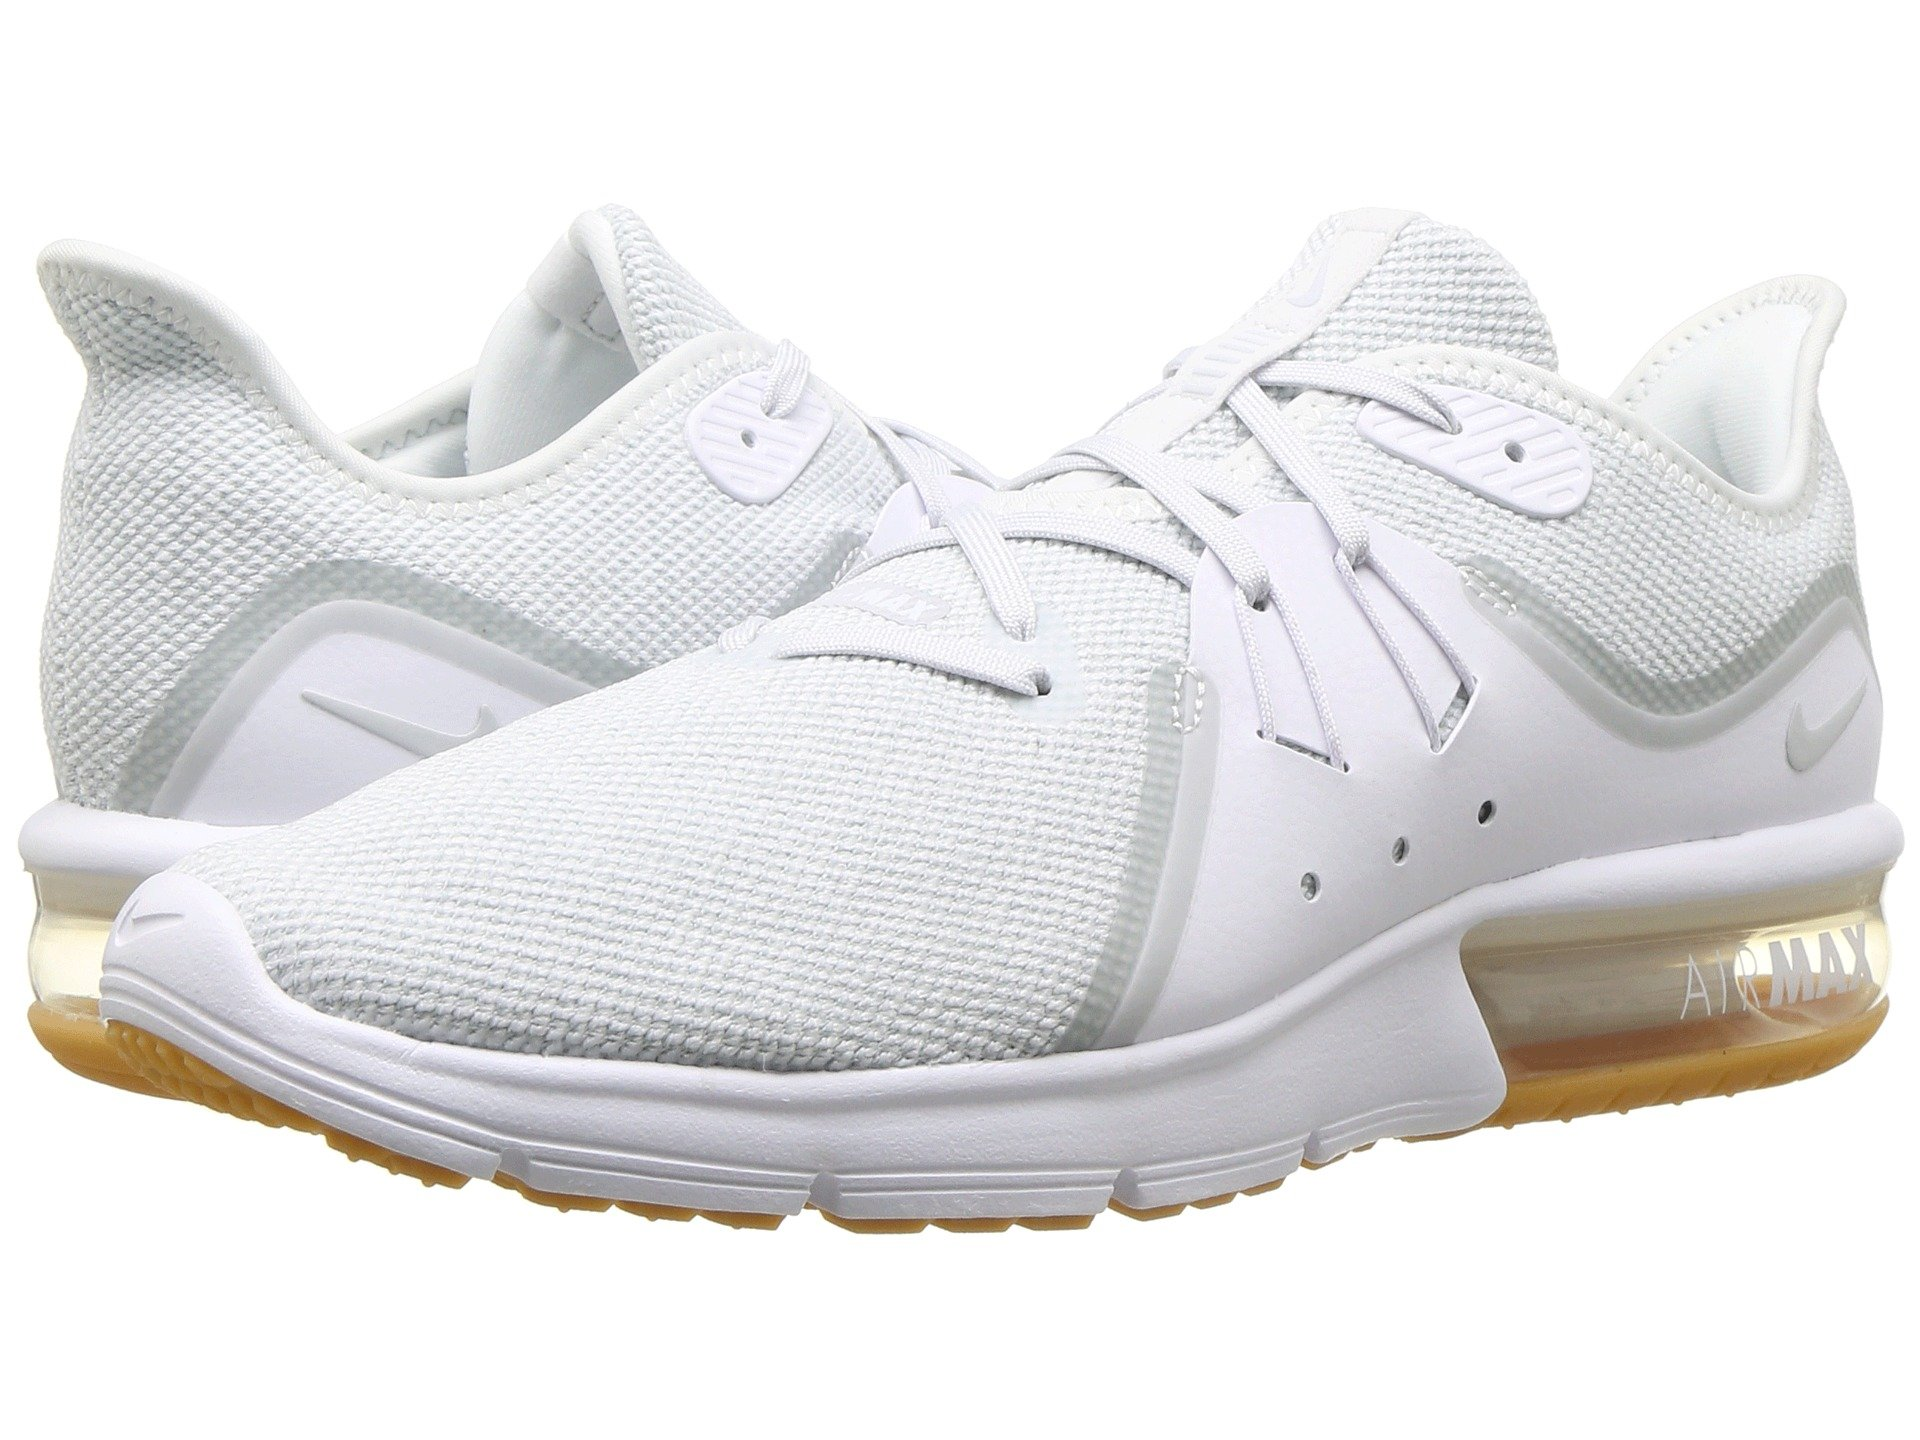 detailed pictures ebd14 7a36f Then when you feel they are ready, go to a decent shoe-shop this is not  the time to skimp. So, what are you waiting for Get yourself a fashionable  and ...